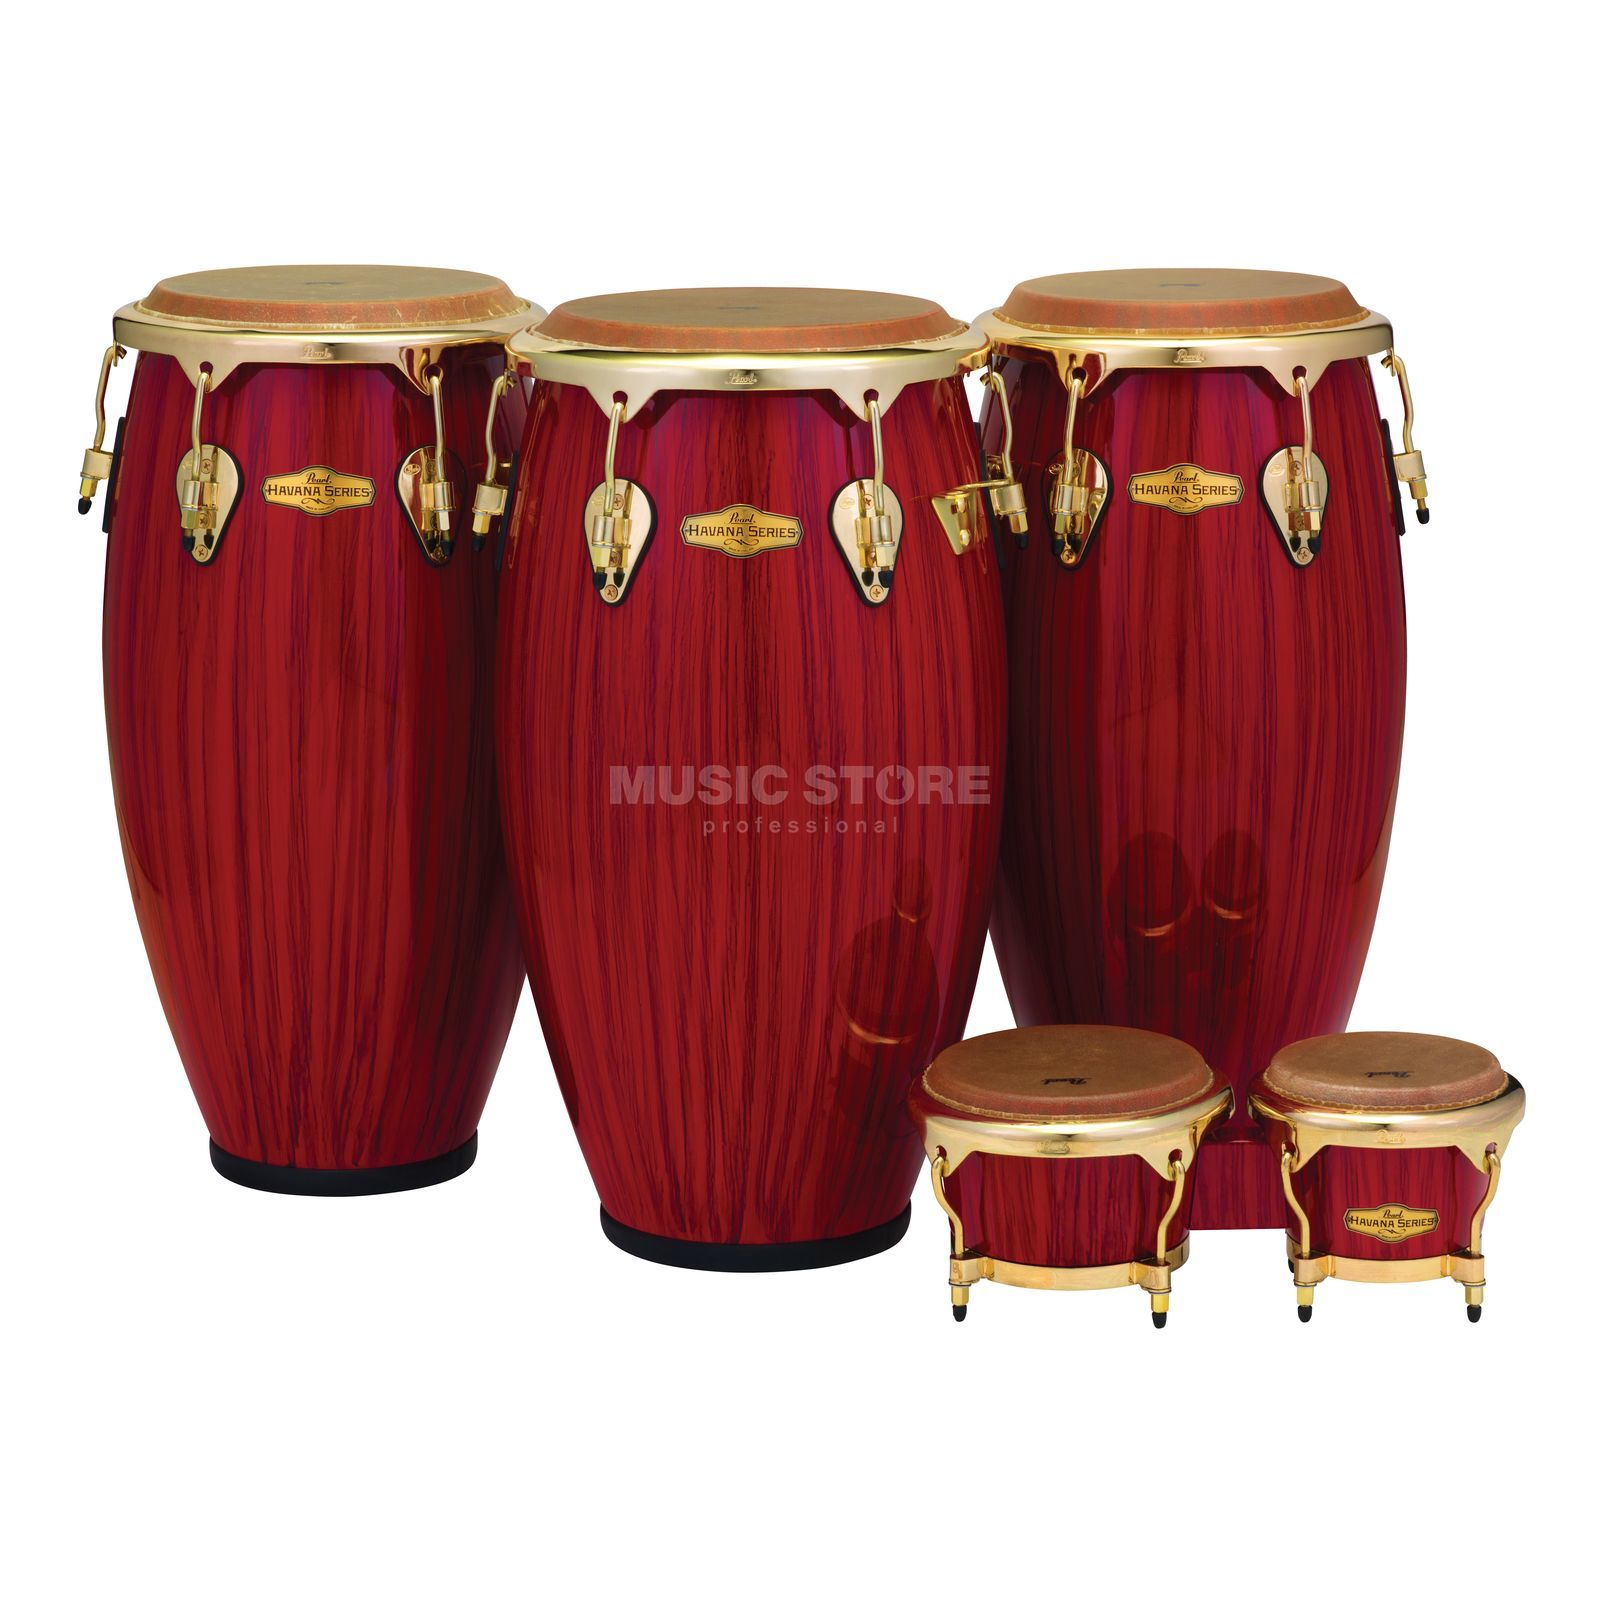 "Pearl Big Belly Havana Conga 11-3/4"", Red Tiger Stripe Zdjęcie produktu"